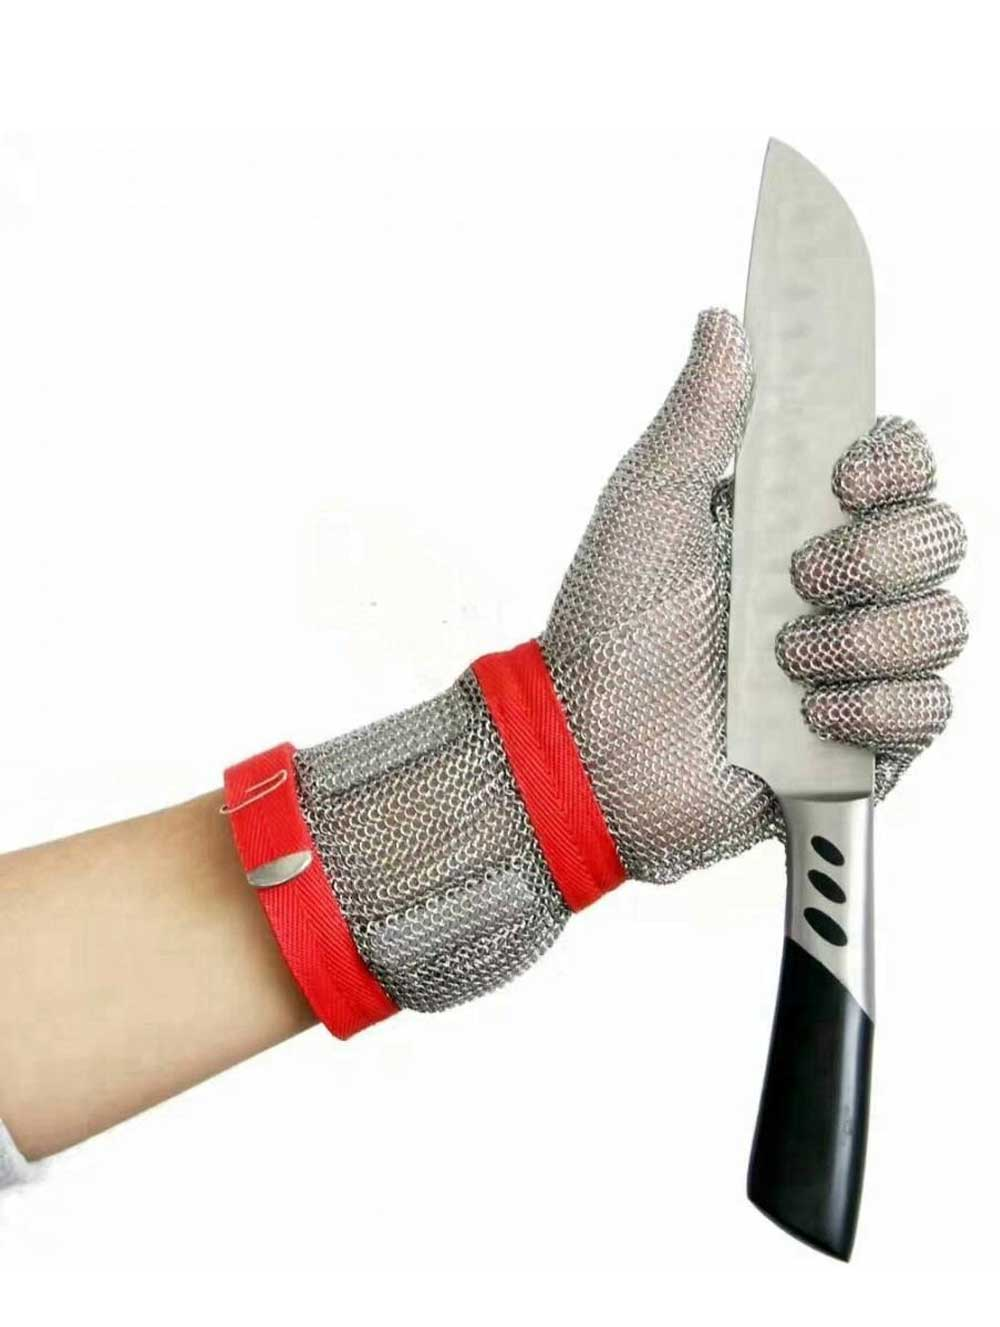 MK1101-Five Finger Wrist Stainless Steel Glove With Extended Textile Cuff